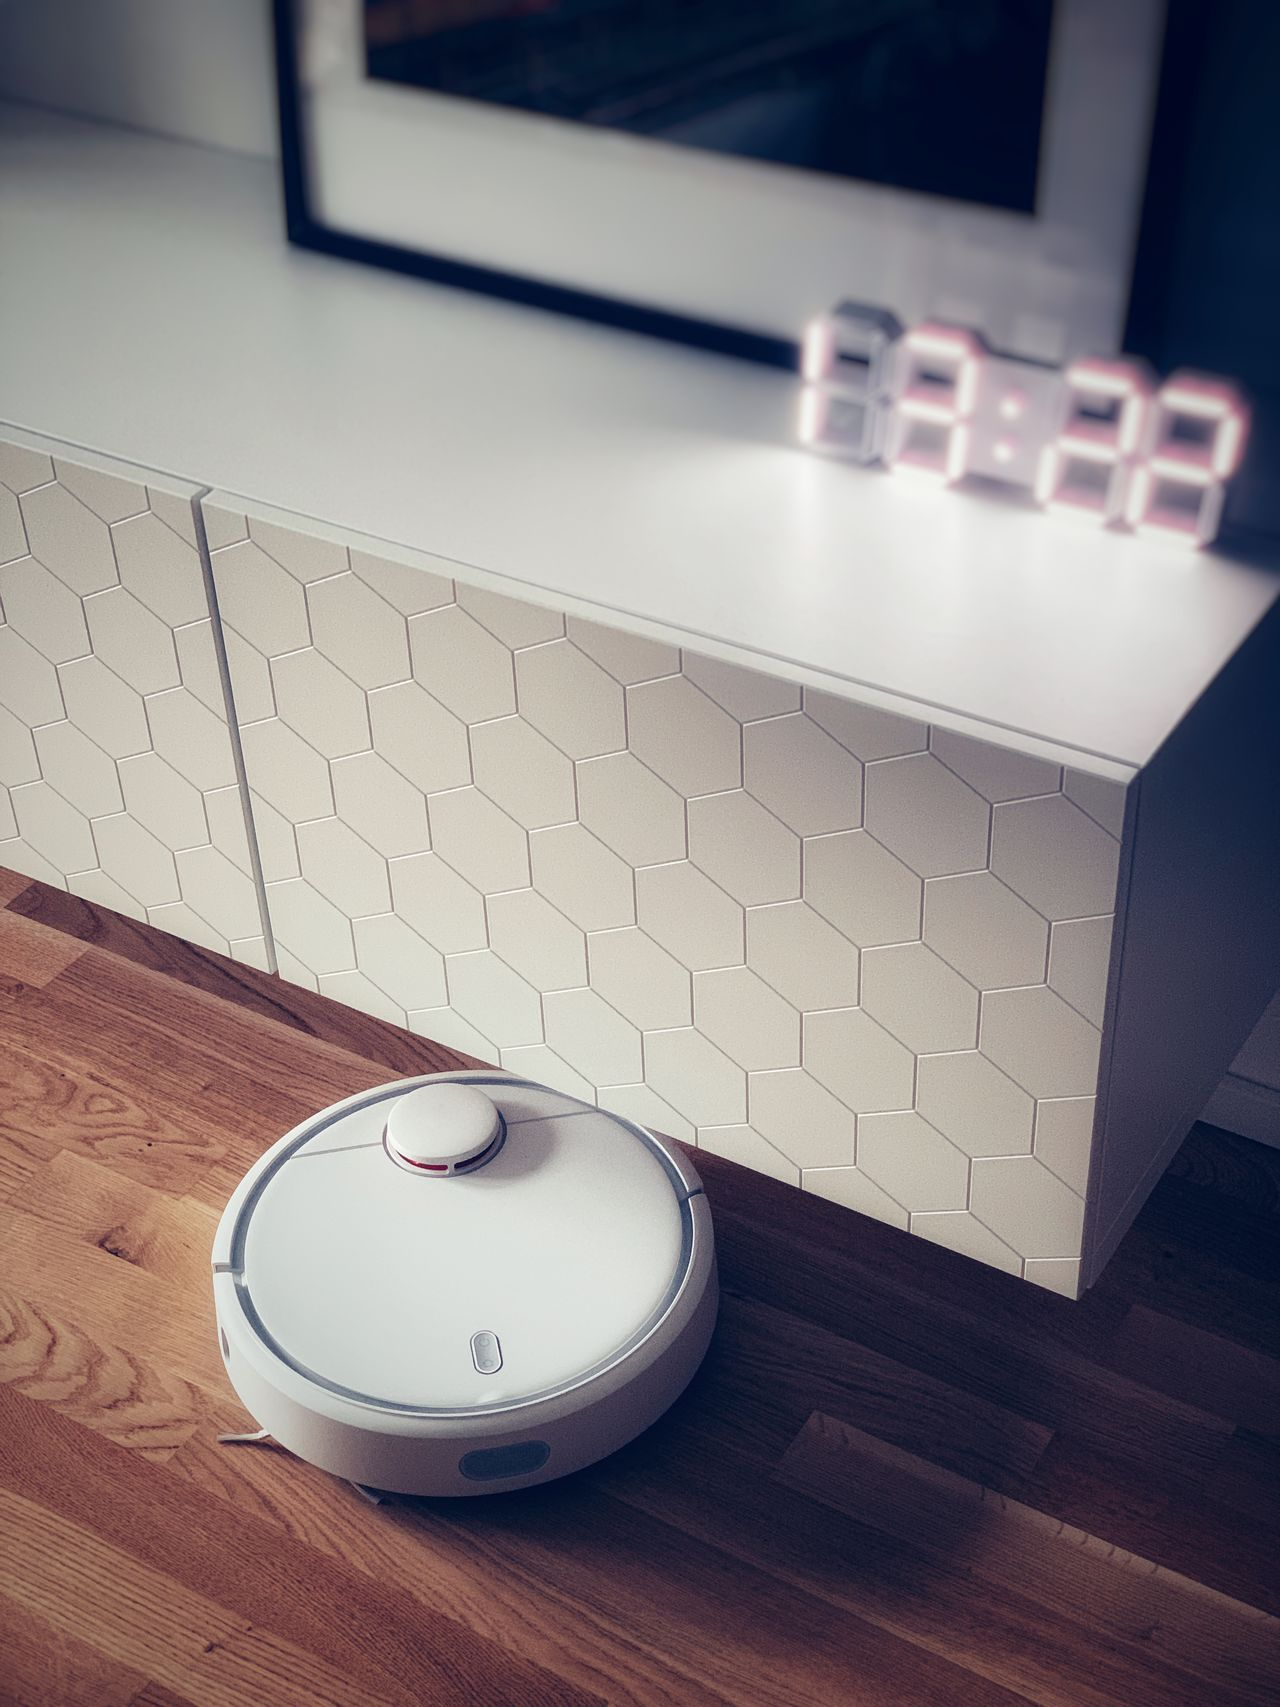 High angle view of robotic vacuum cleaner at home